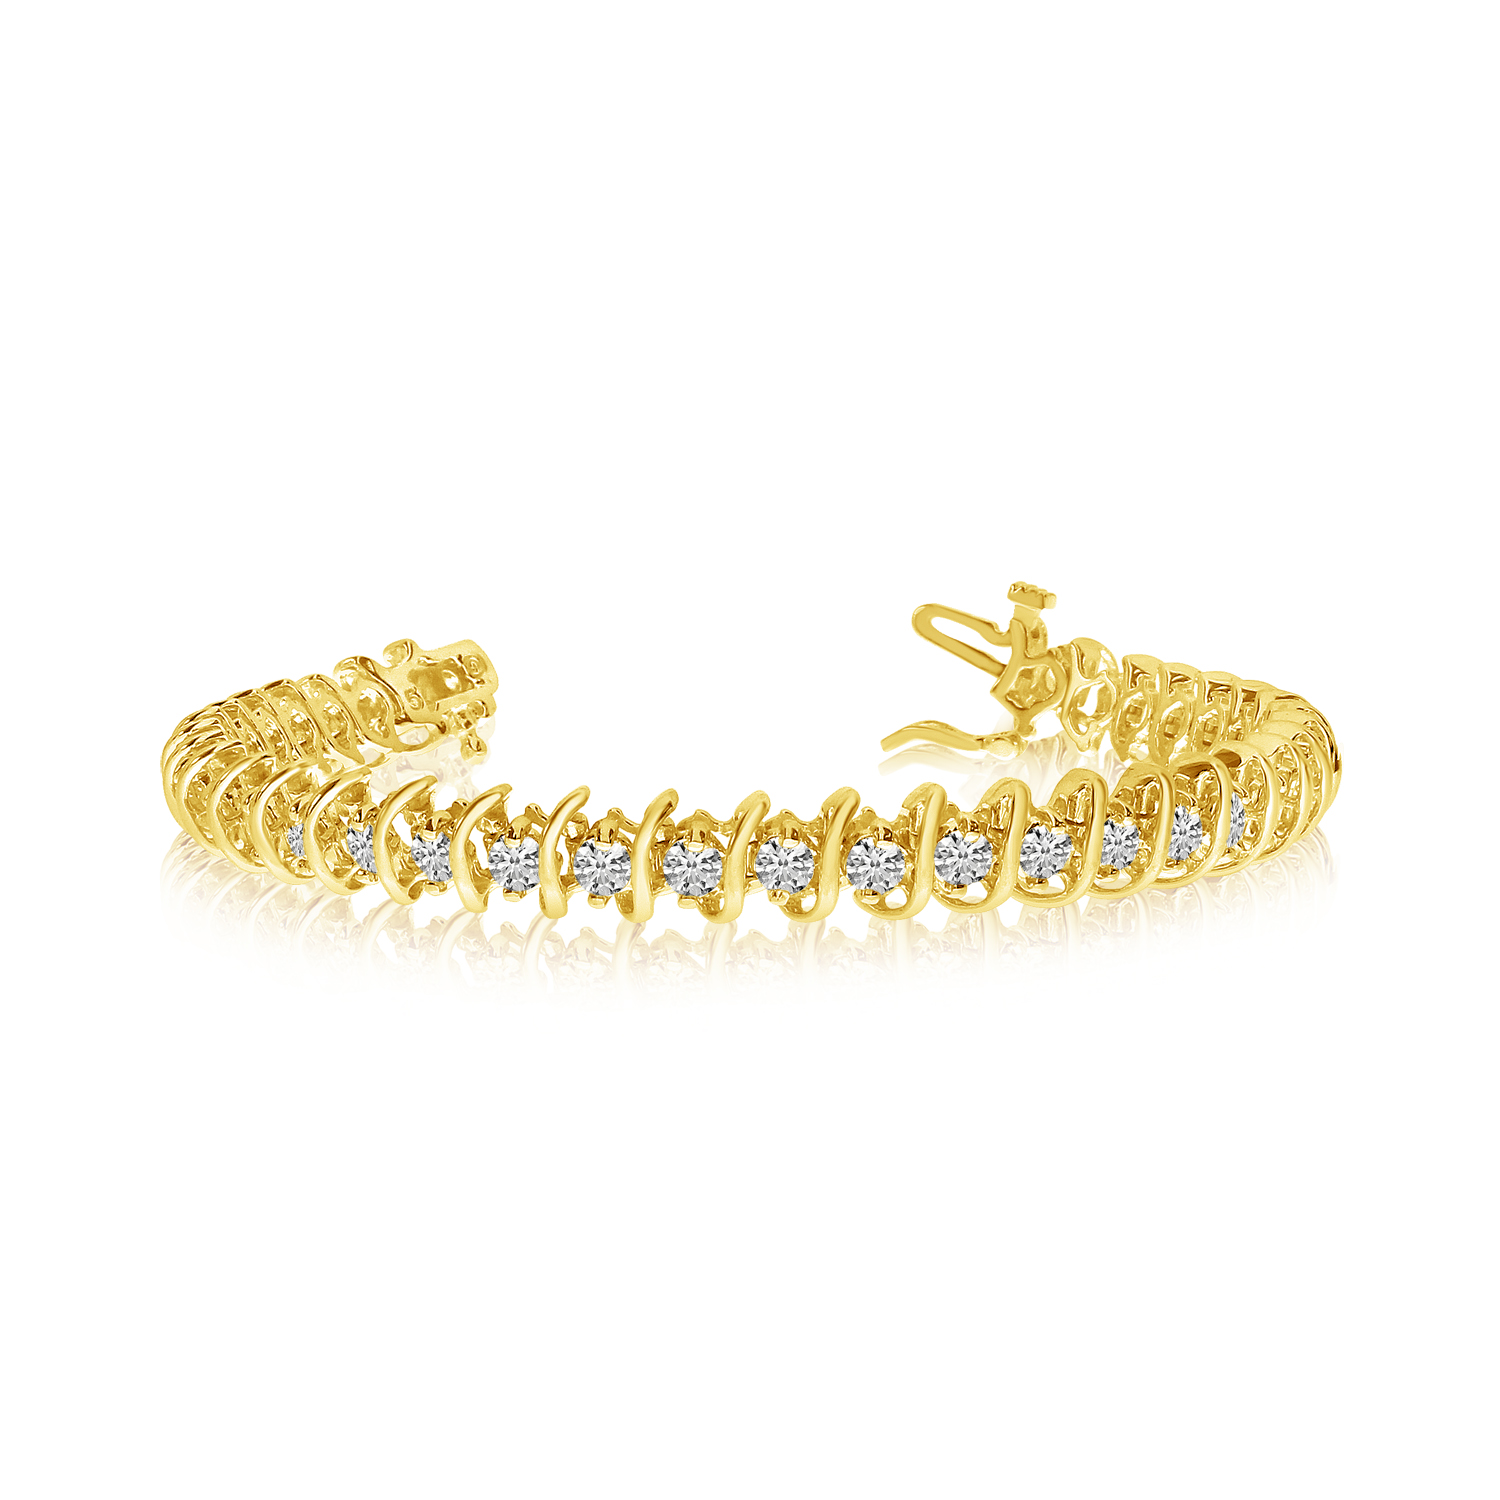 14k Yellow Gold Rollover Diamond Tennis Bracelet by